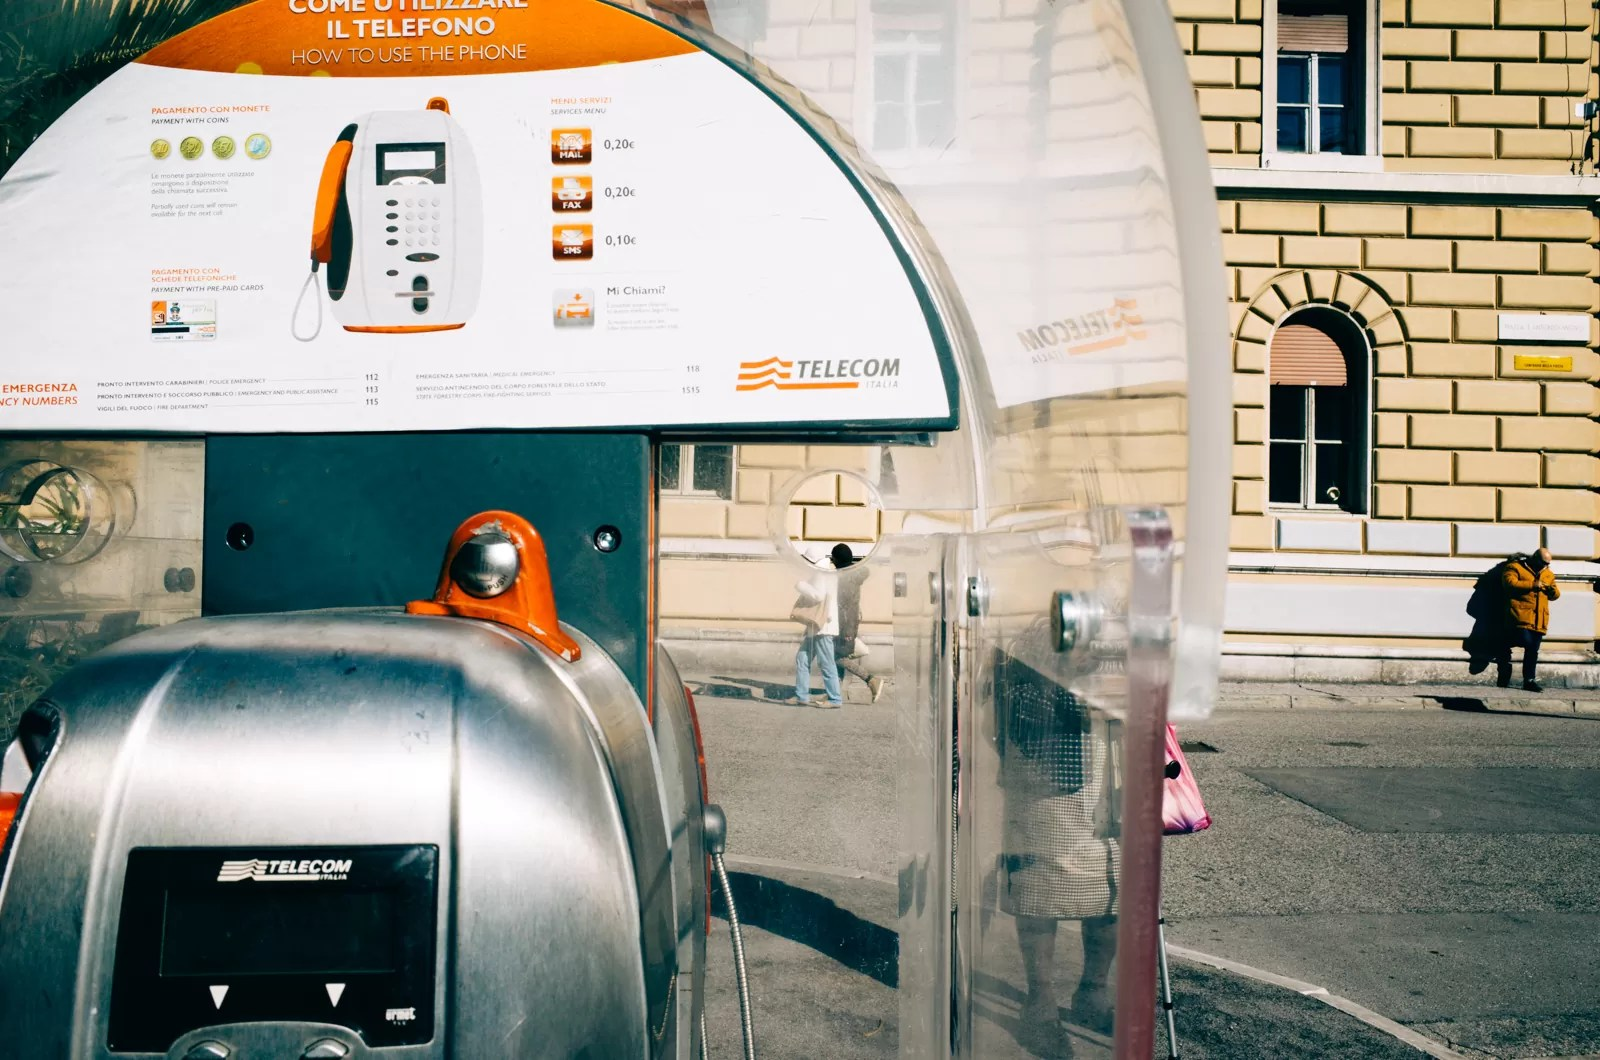 R0006680 - One Day in Trieste [Color Street Photography] - fotostreet.it